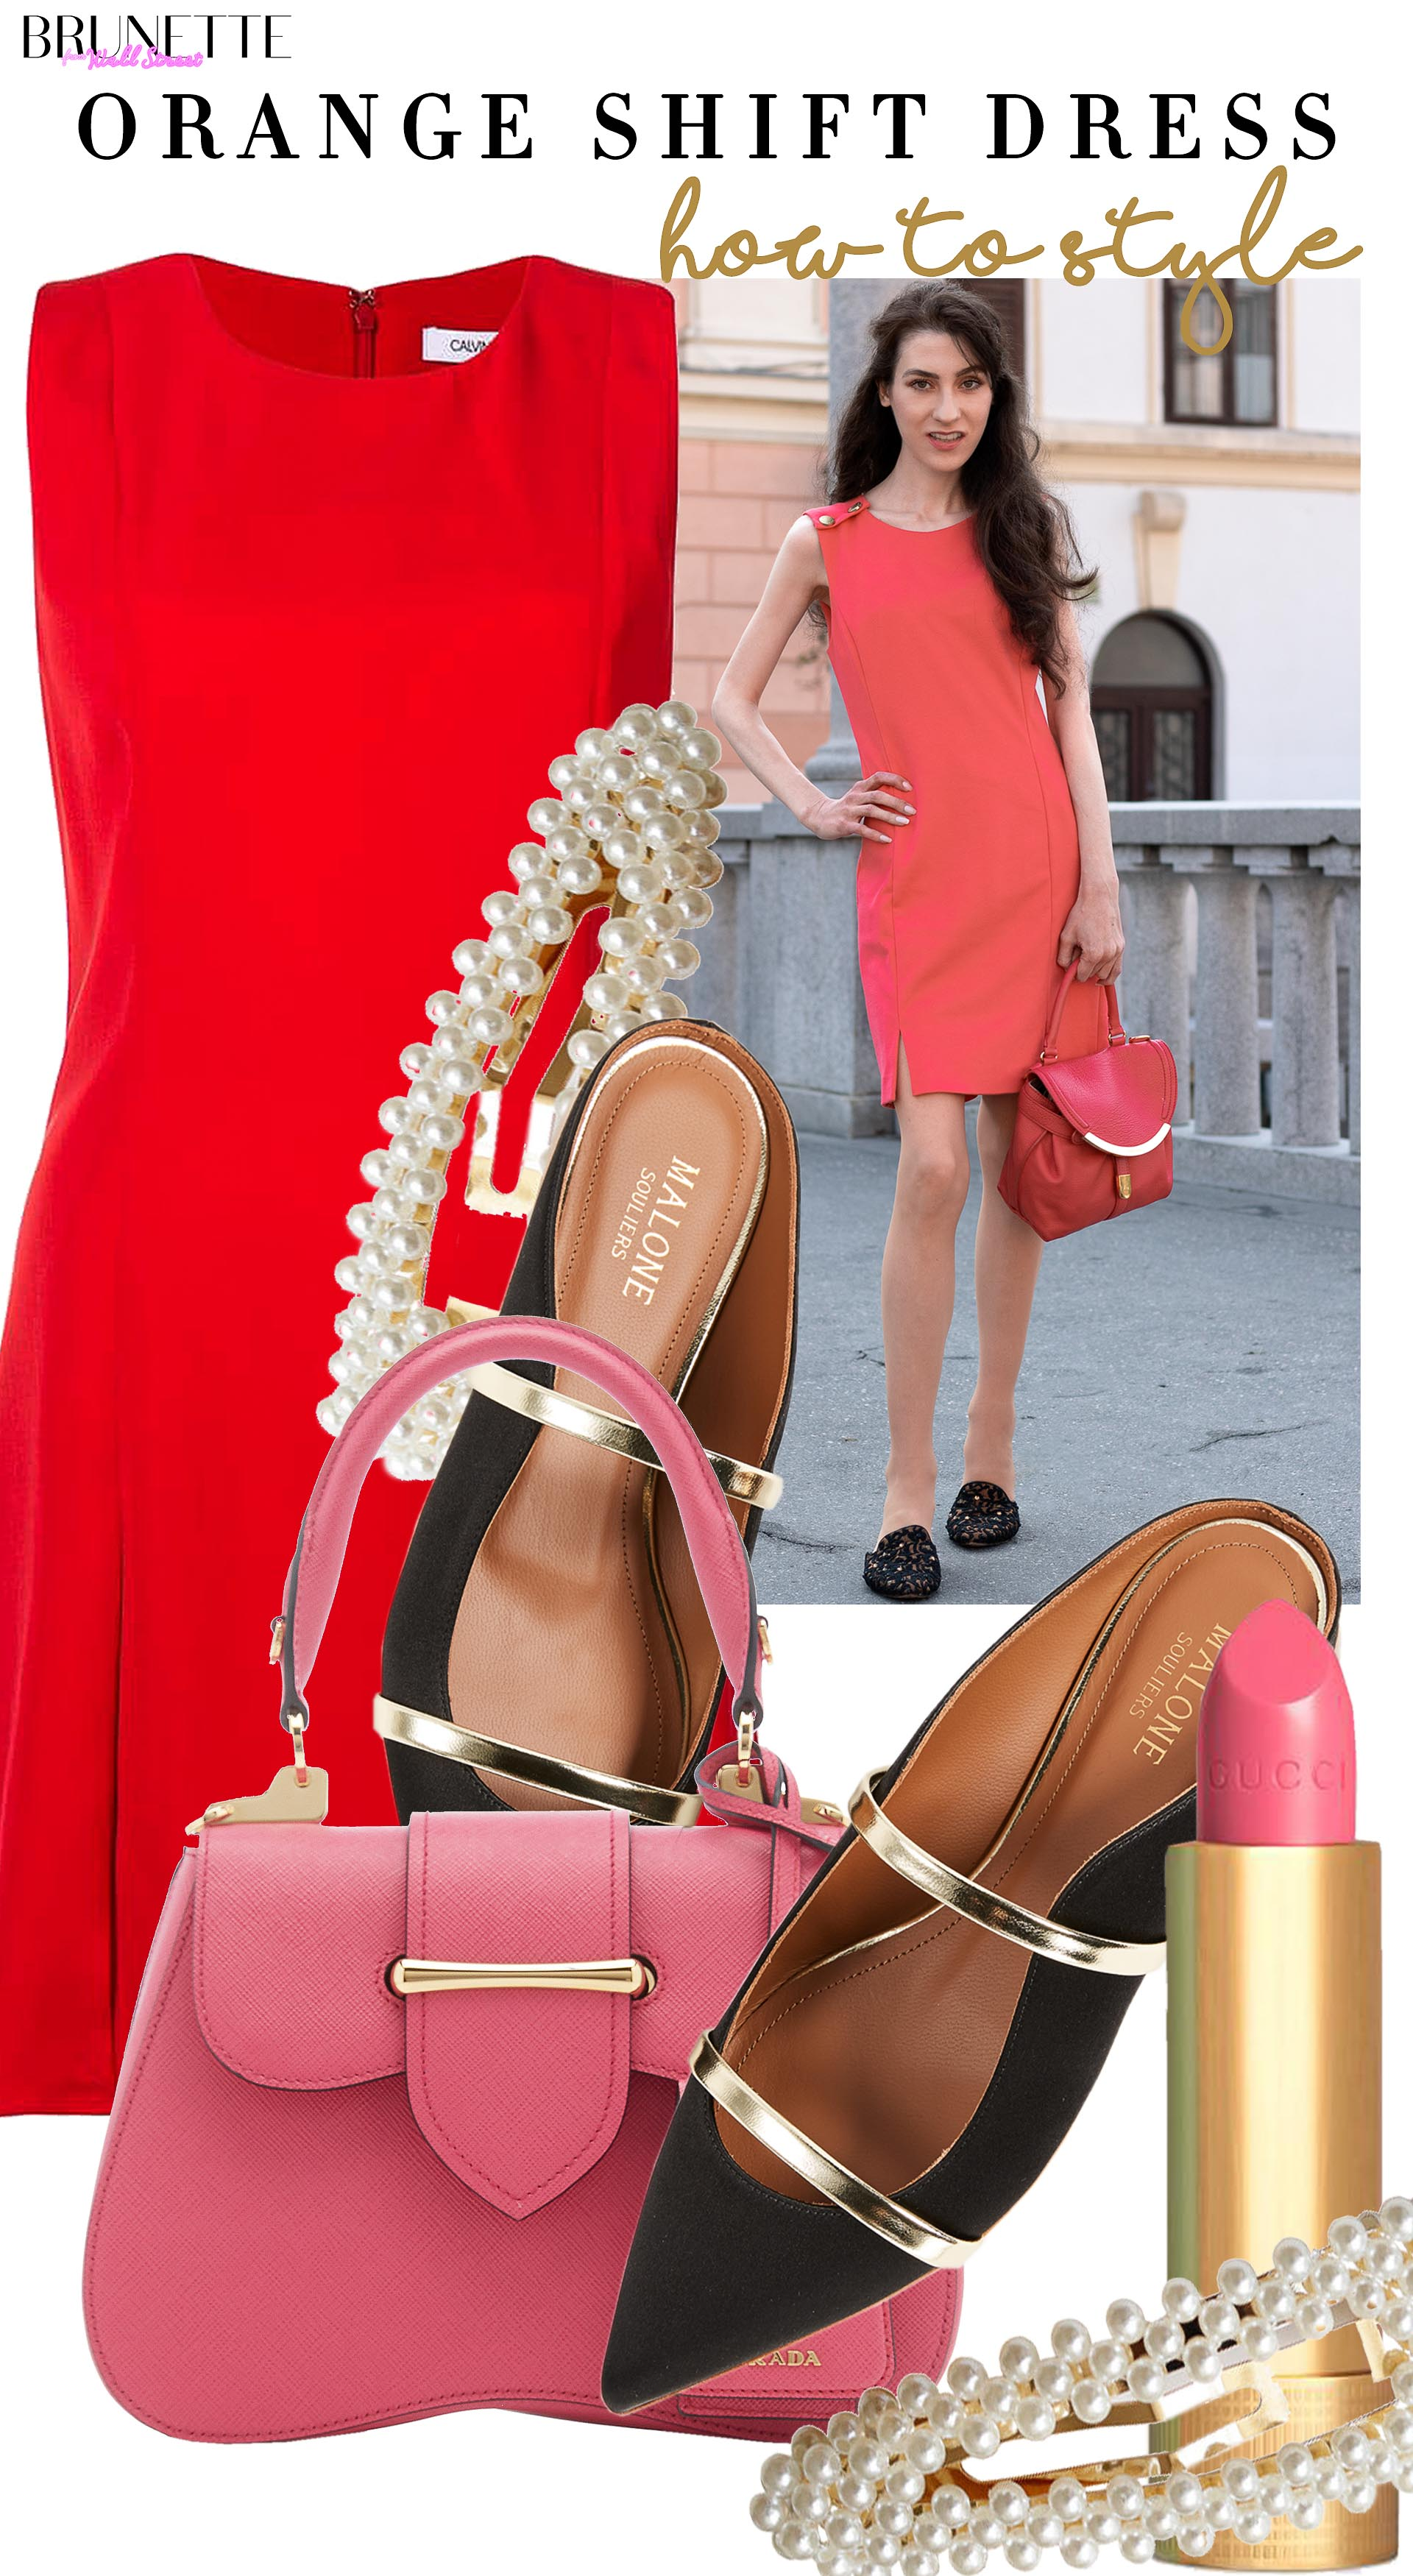 Brunette from Wall Street how to style orange shift dress for summer brunch prada top handle bag malone souliers flats